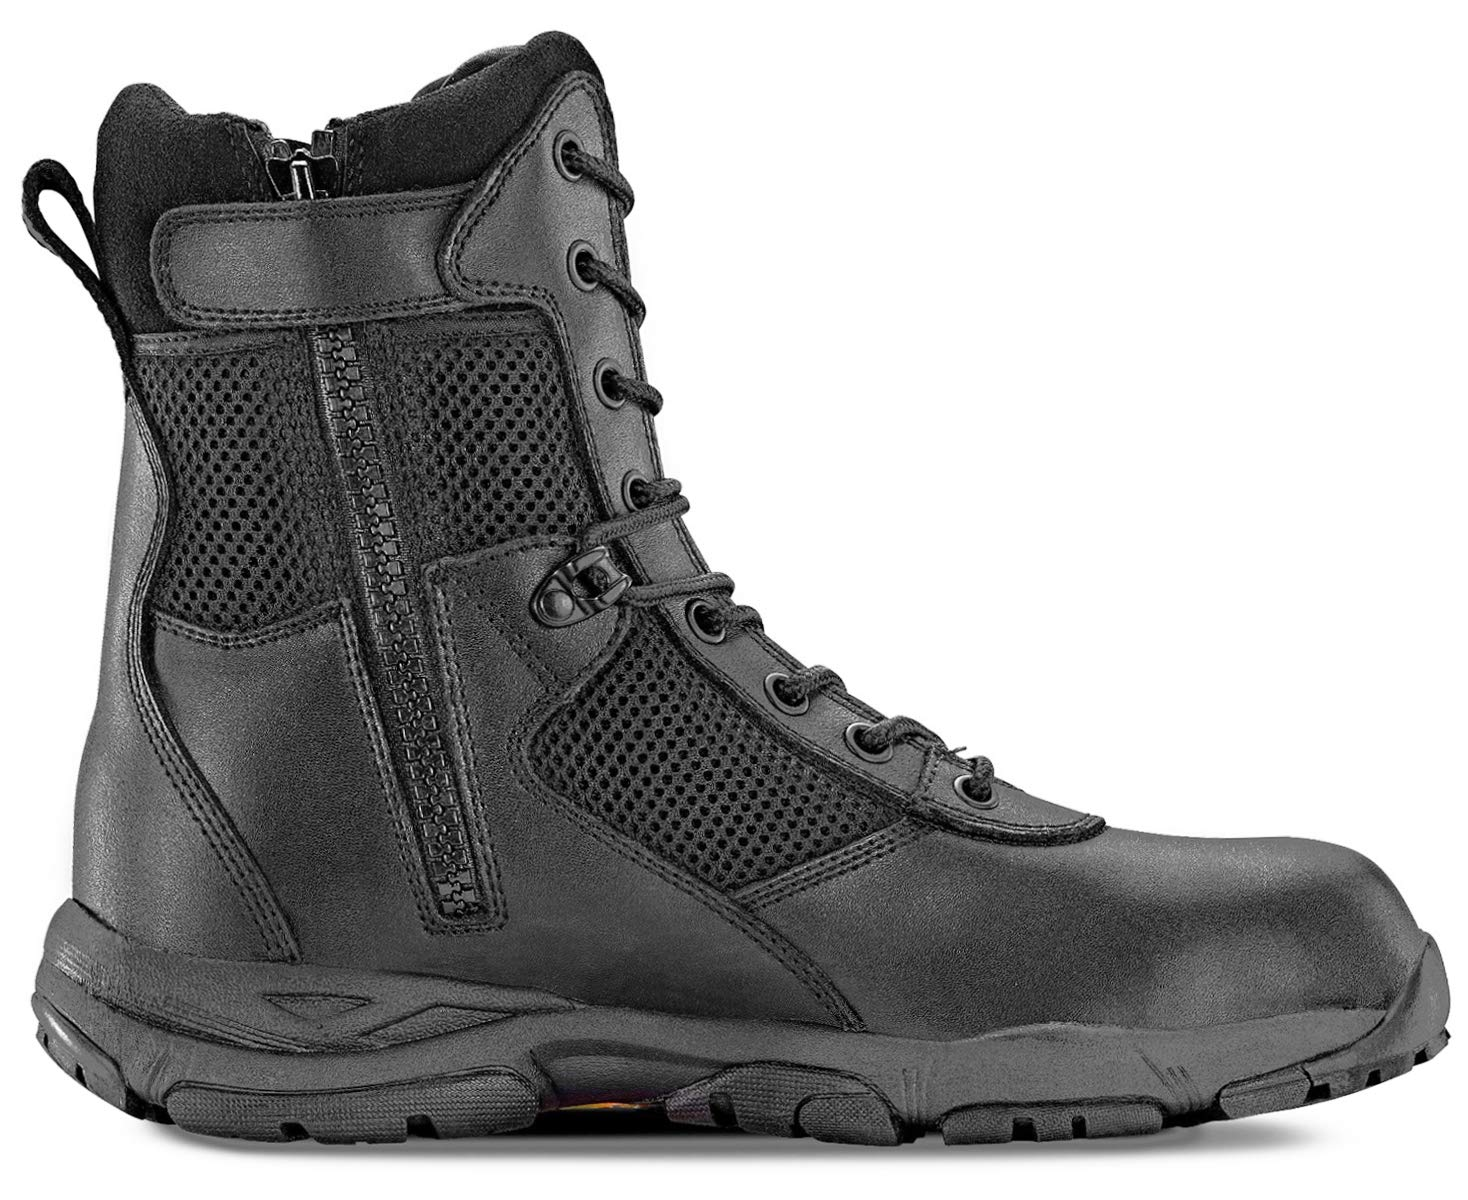 Maelstrom Landship 2.0 Men's 8'' Black Military Tactical Boots with Zipper, Size 13M